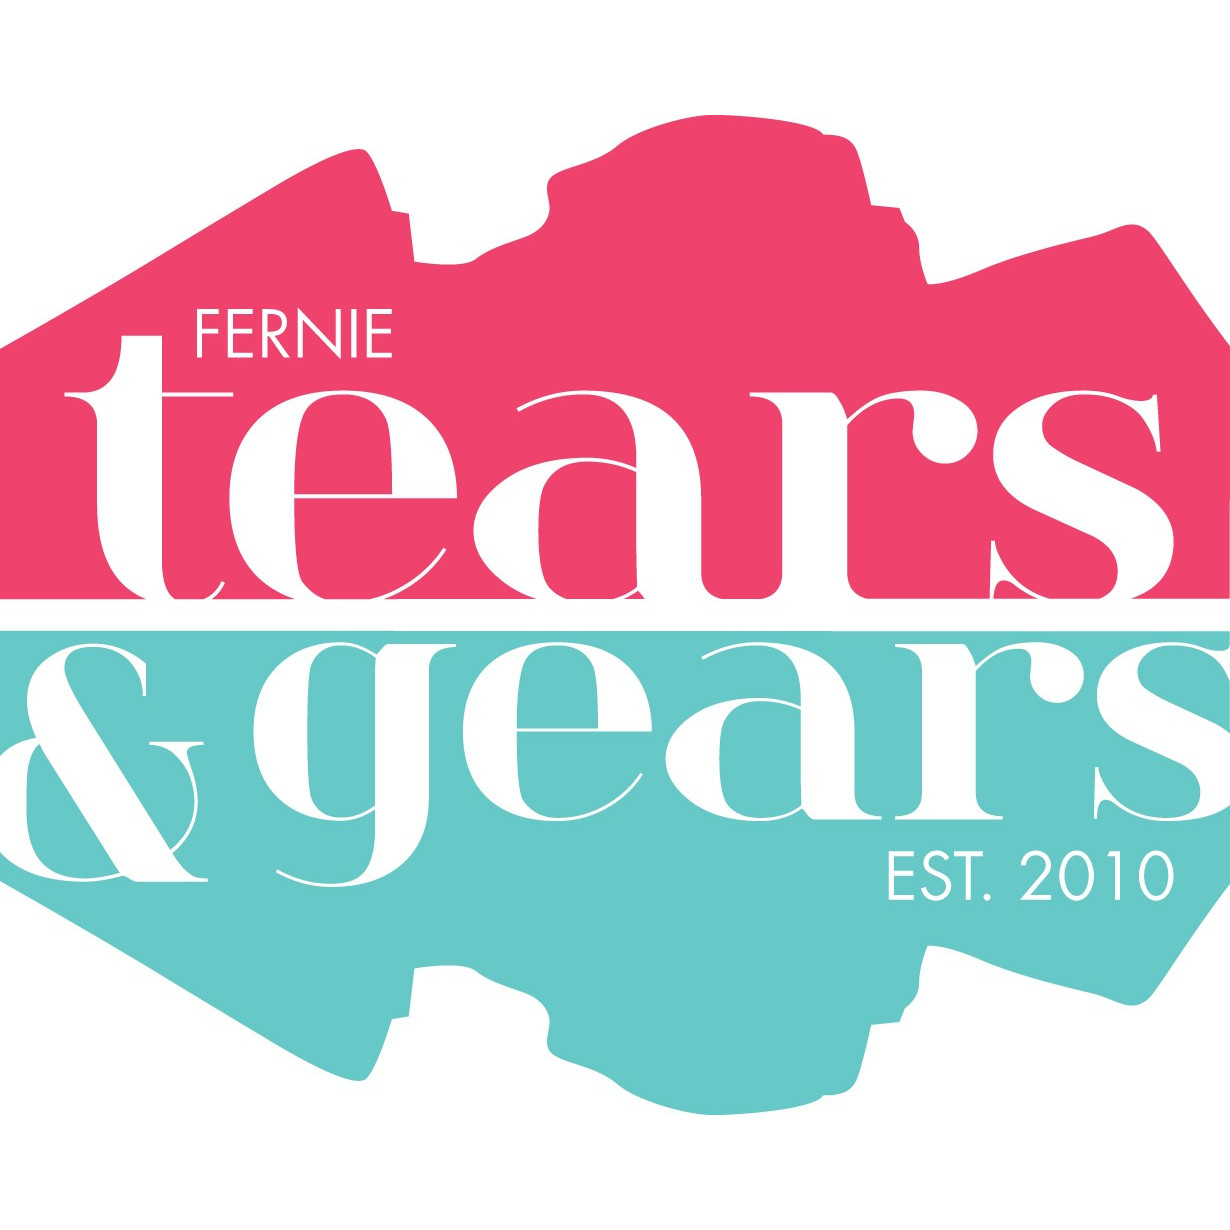 10th Annual Fernie Tears & Gears